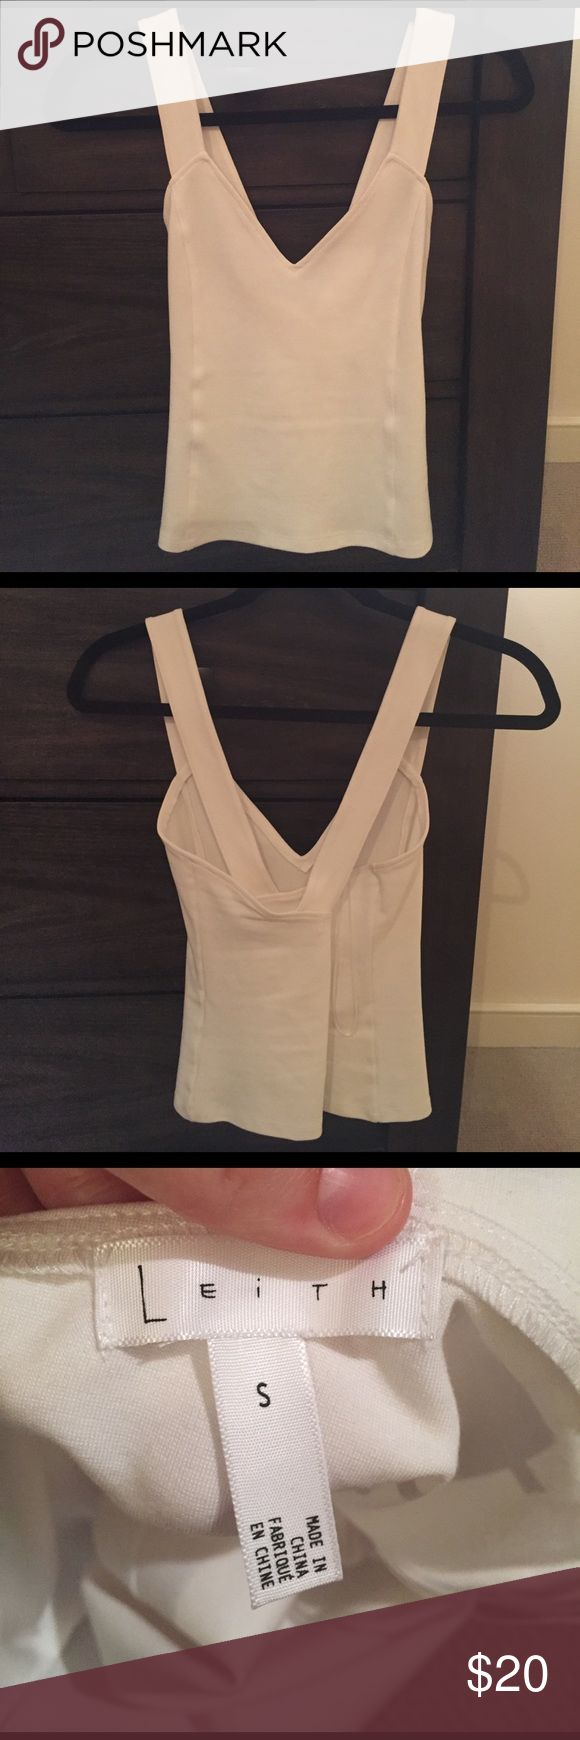 Great white top. NEVER WORN. On the tighter side, I was looking for an alternative to a body suit. Crosses in the back. V neck is very flattering on athletic body type Leith Tops Crop Tops